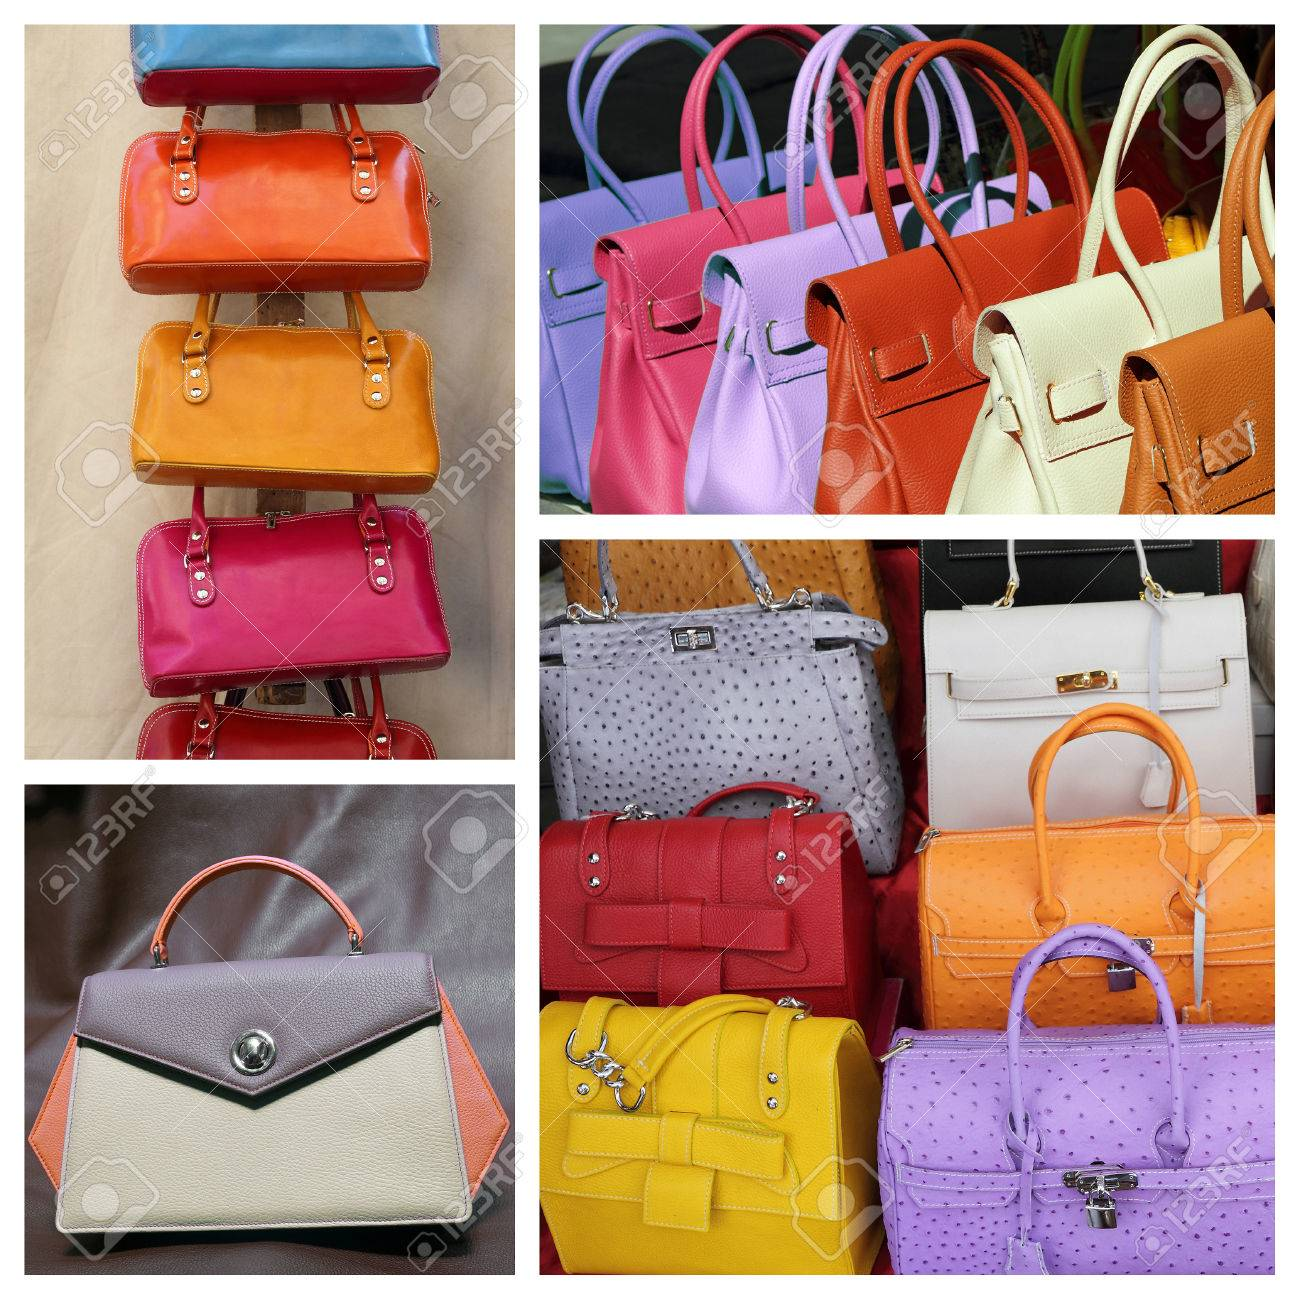 77b3ae0958 colorful fine leather handbags collection Stock Photo - 44351468